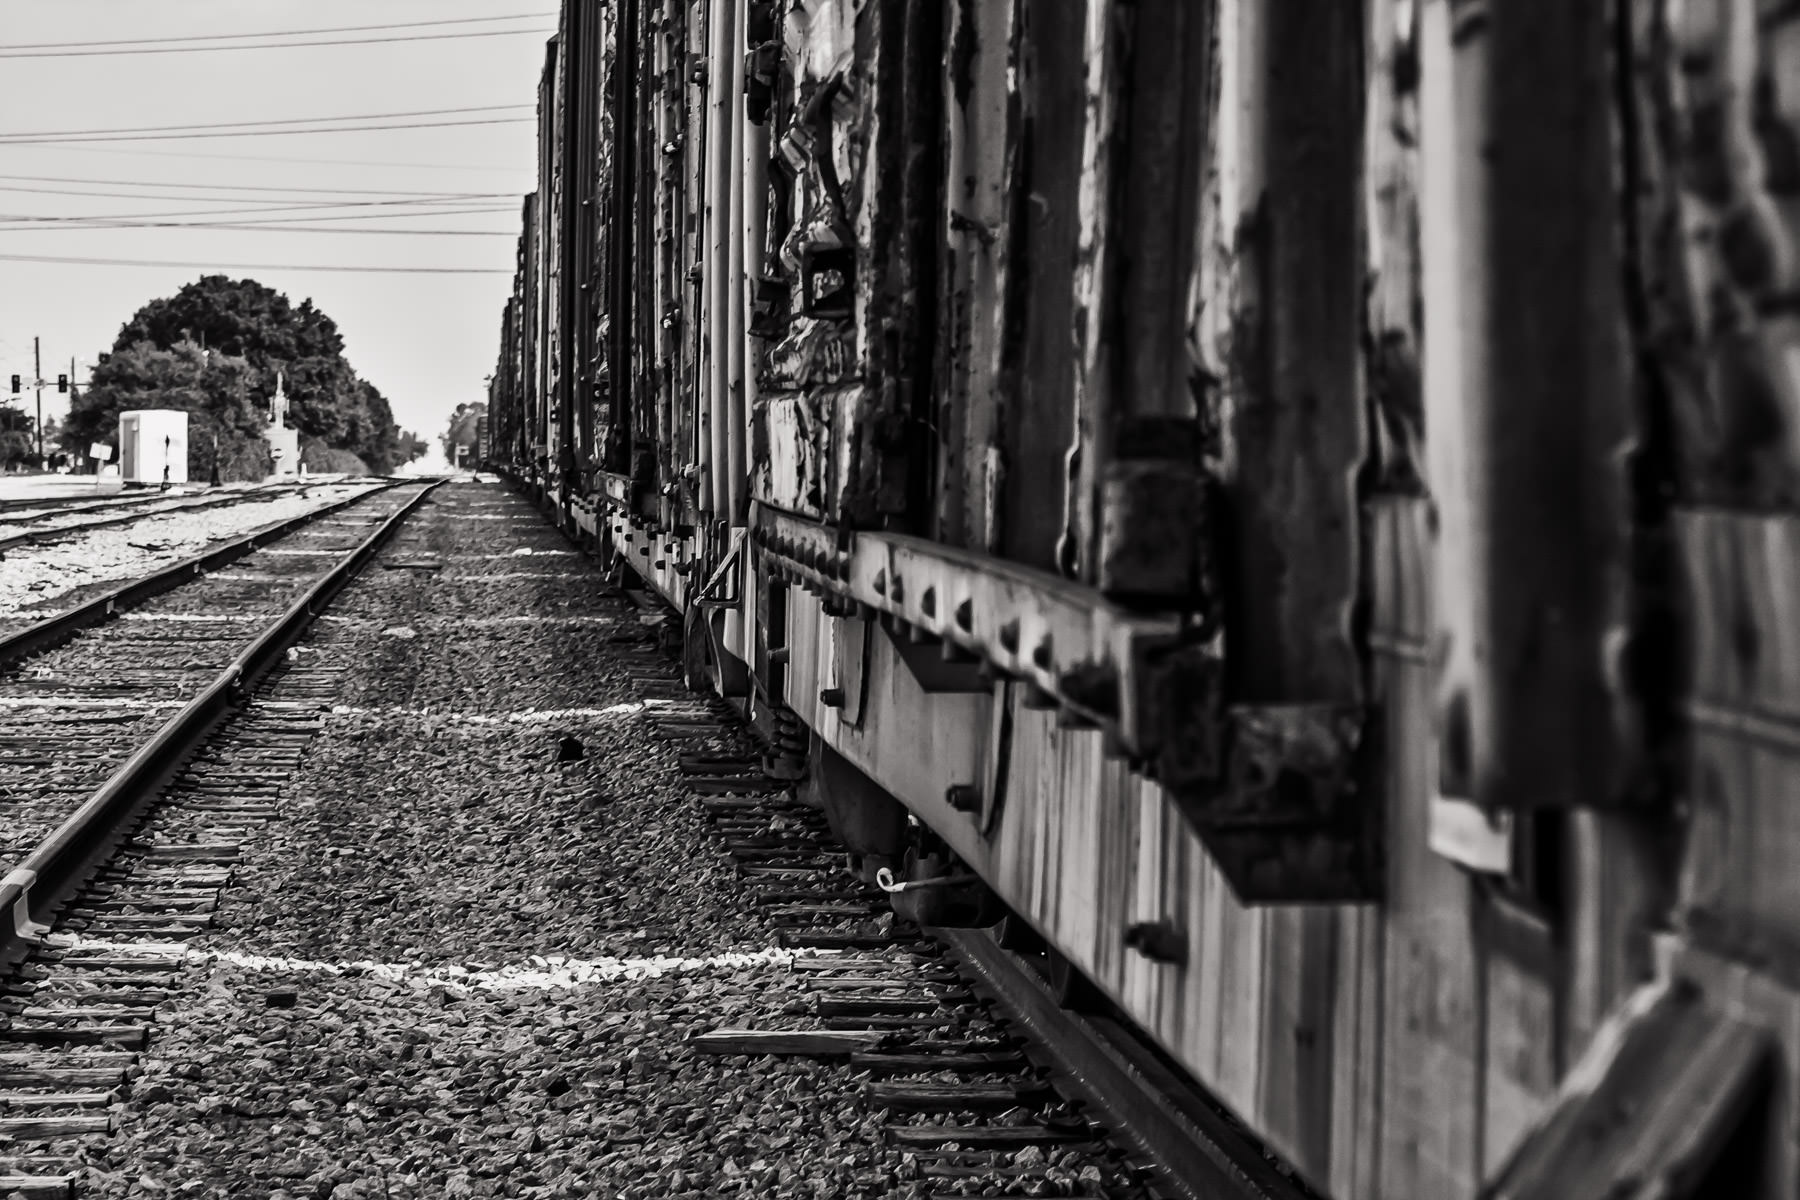 Boxcars on a rail siding in Farmers Branch, Texas.